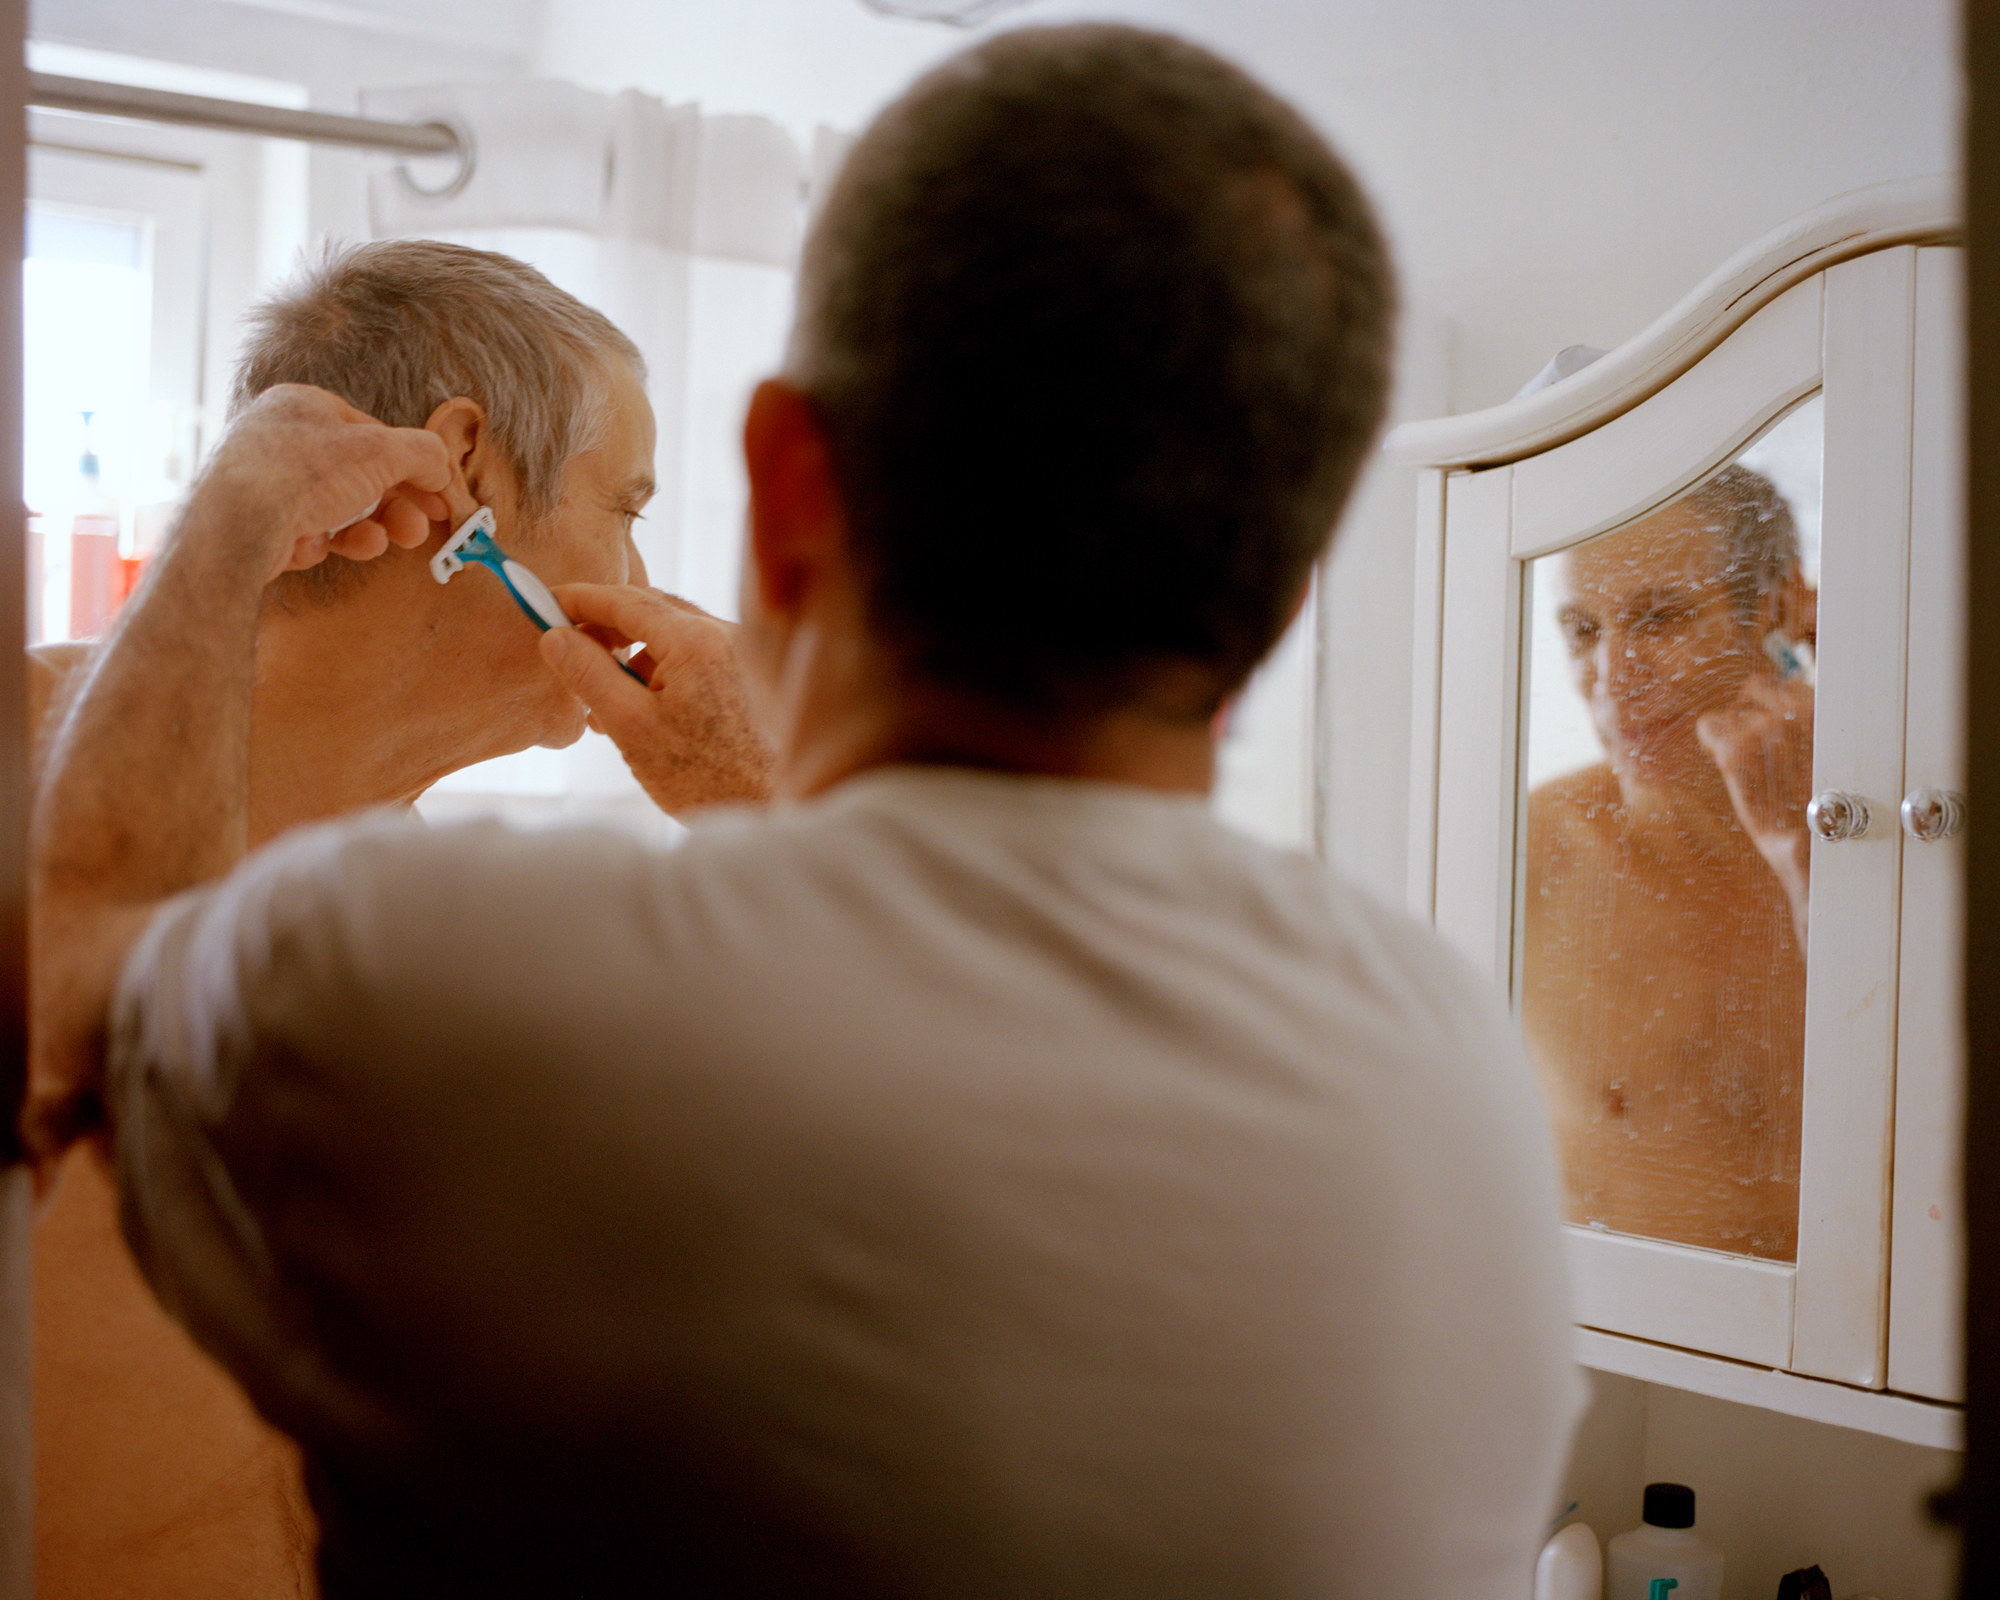 A younger man shaves an older man reflected in the mirror in a bathroom